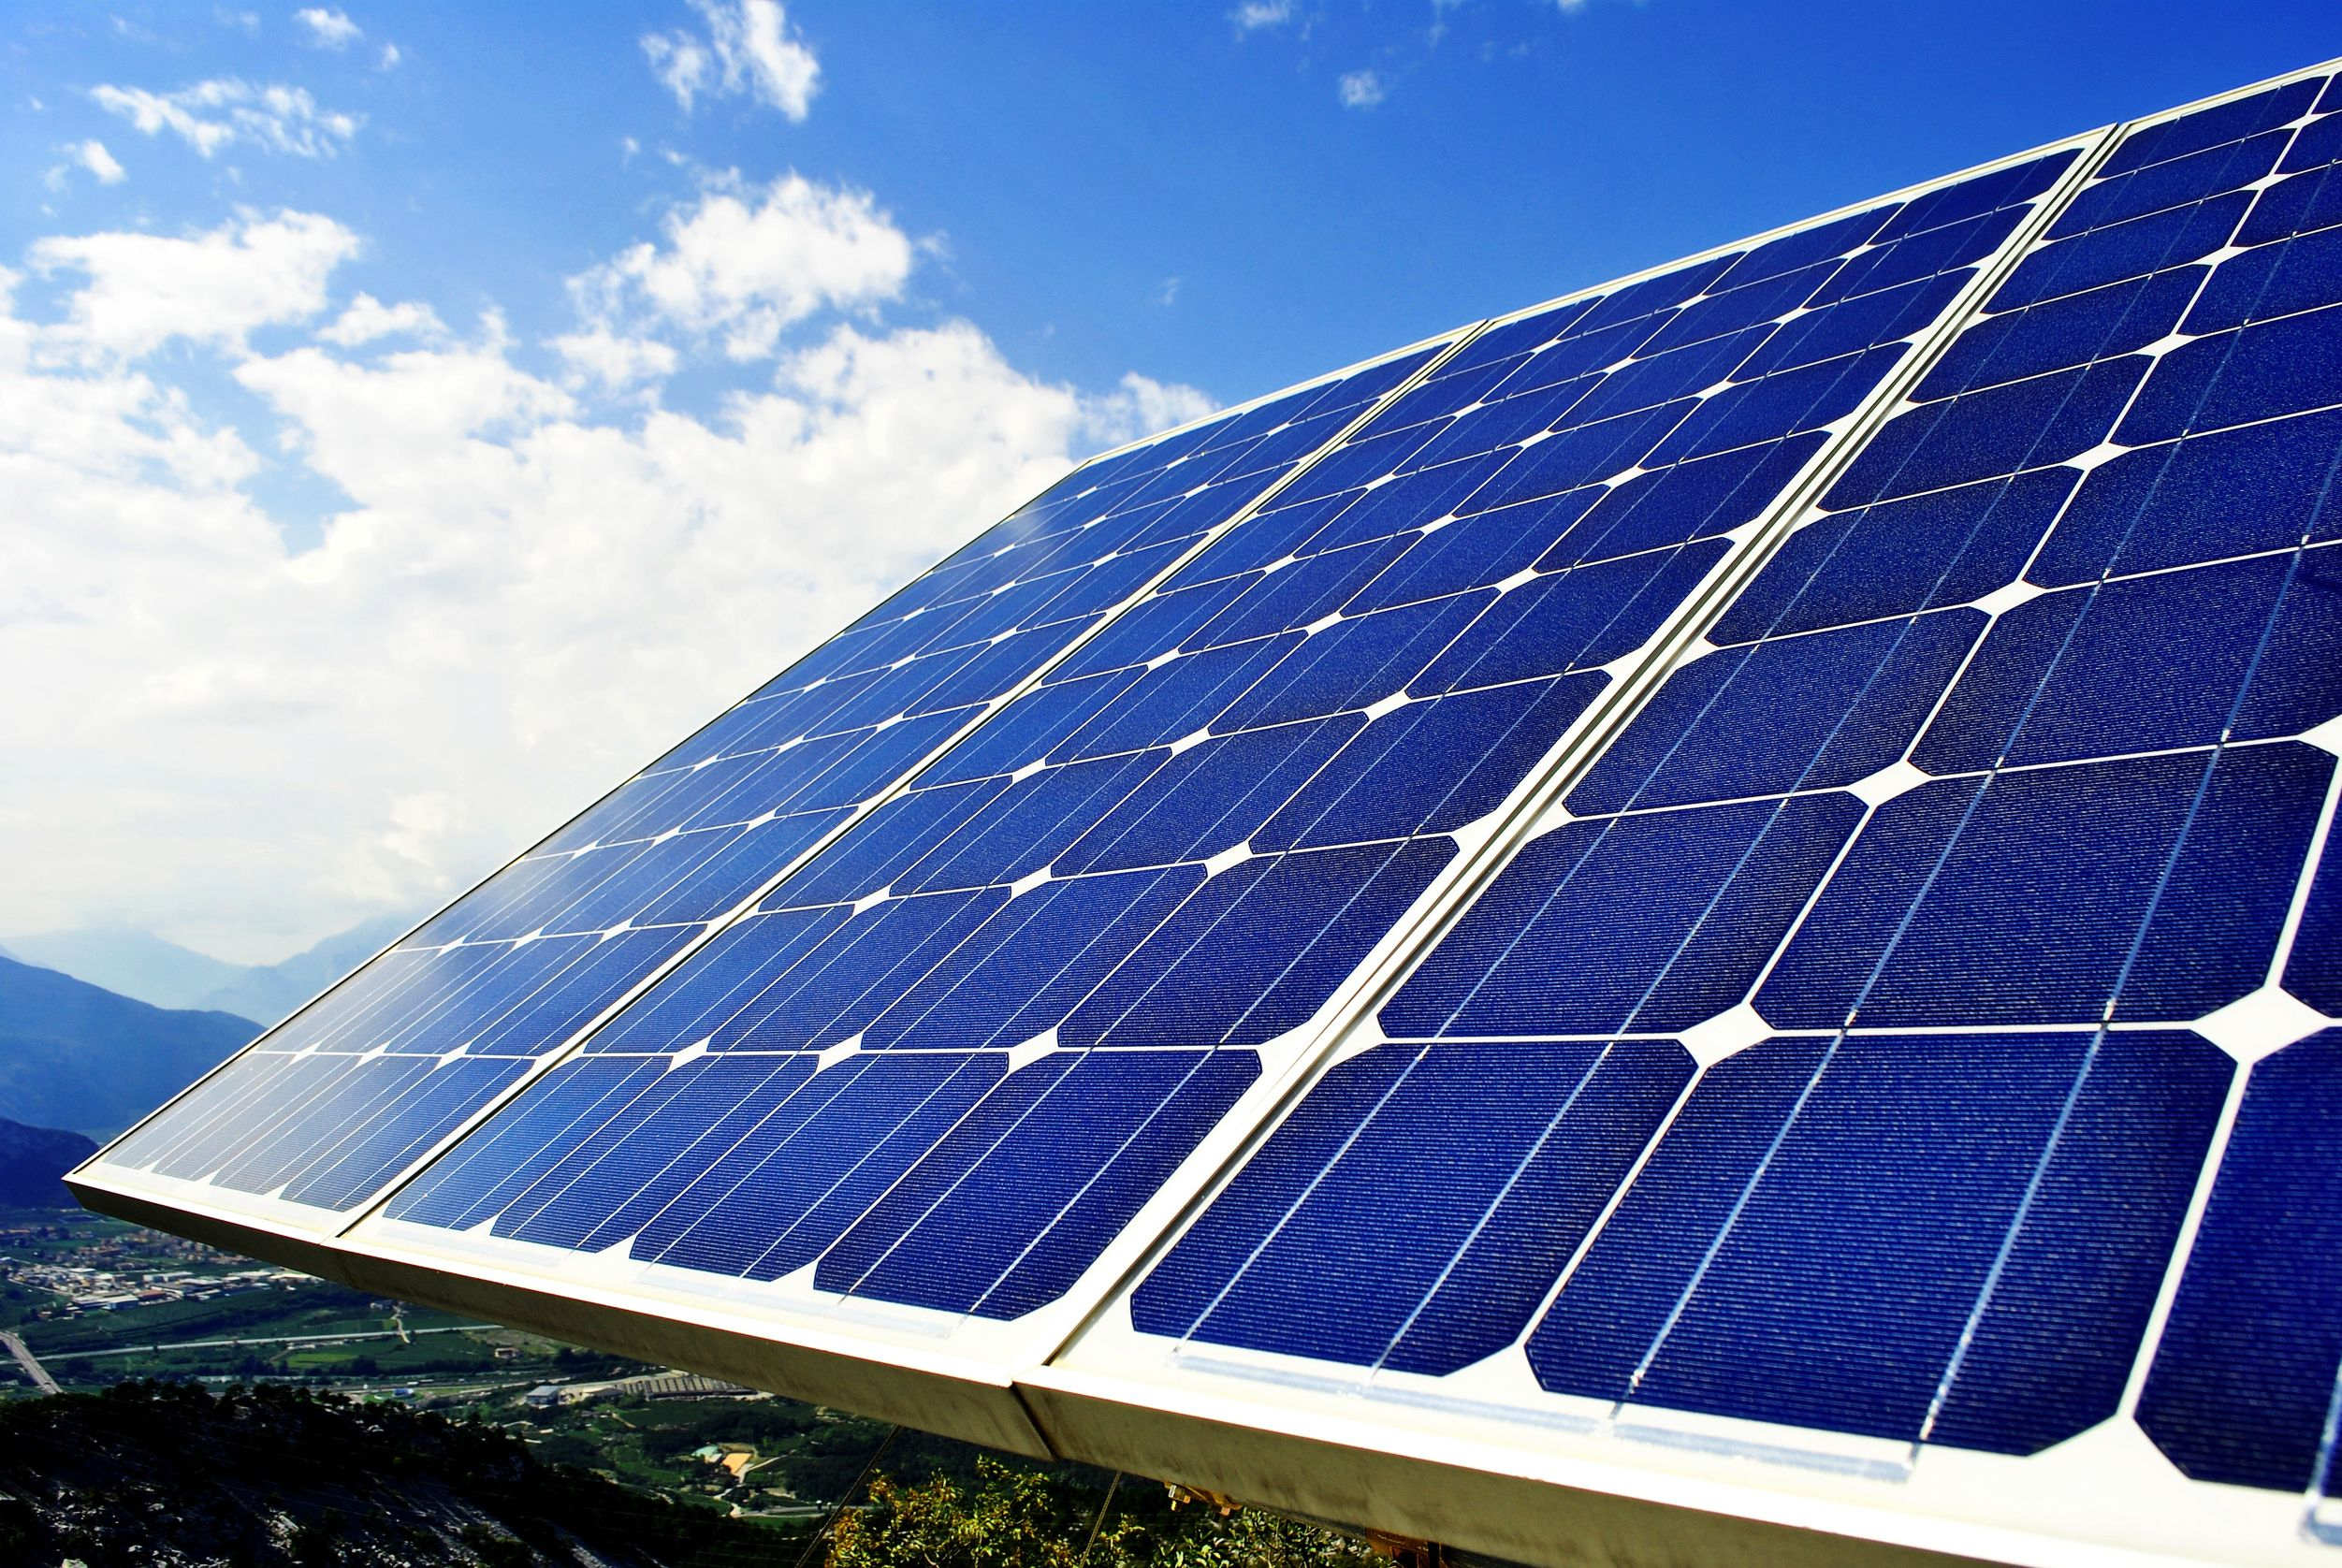 propect of solar energy in malaysia Feasibility study on solar power plant utility grid under solar energy technologies solar energy easily malaysia is a country in which.